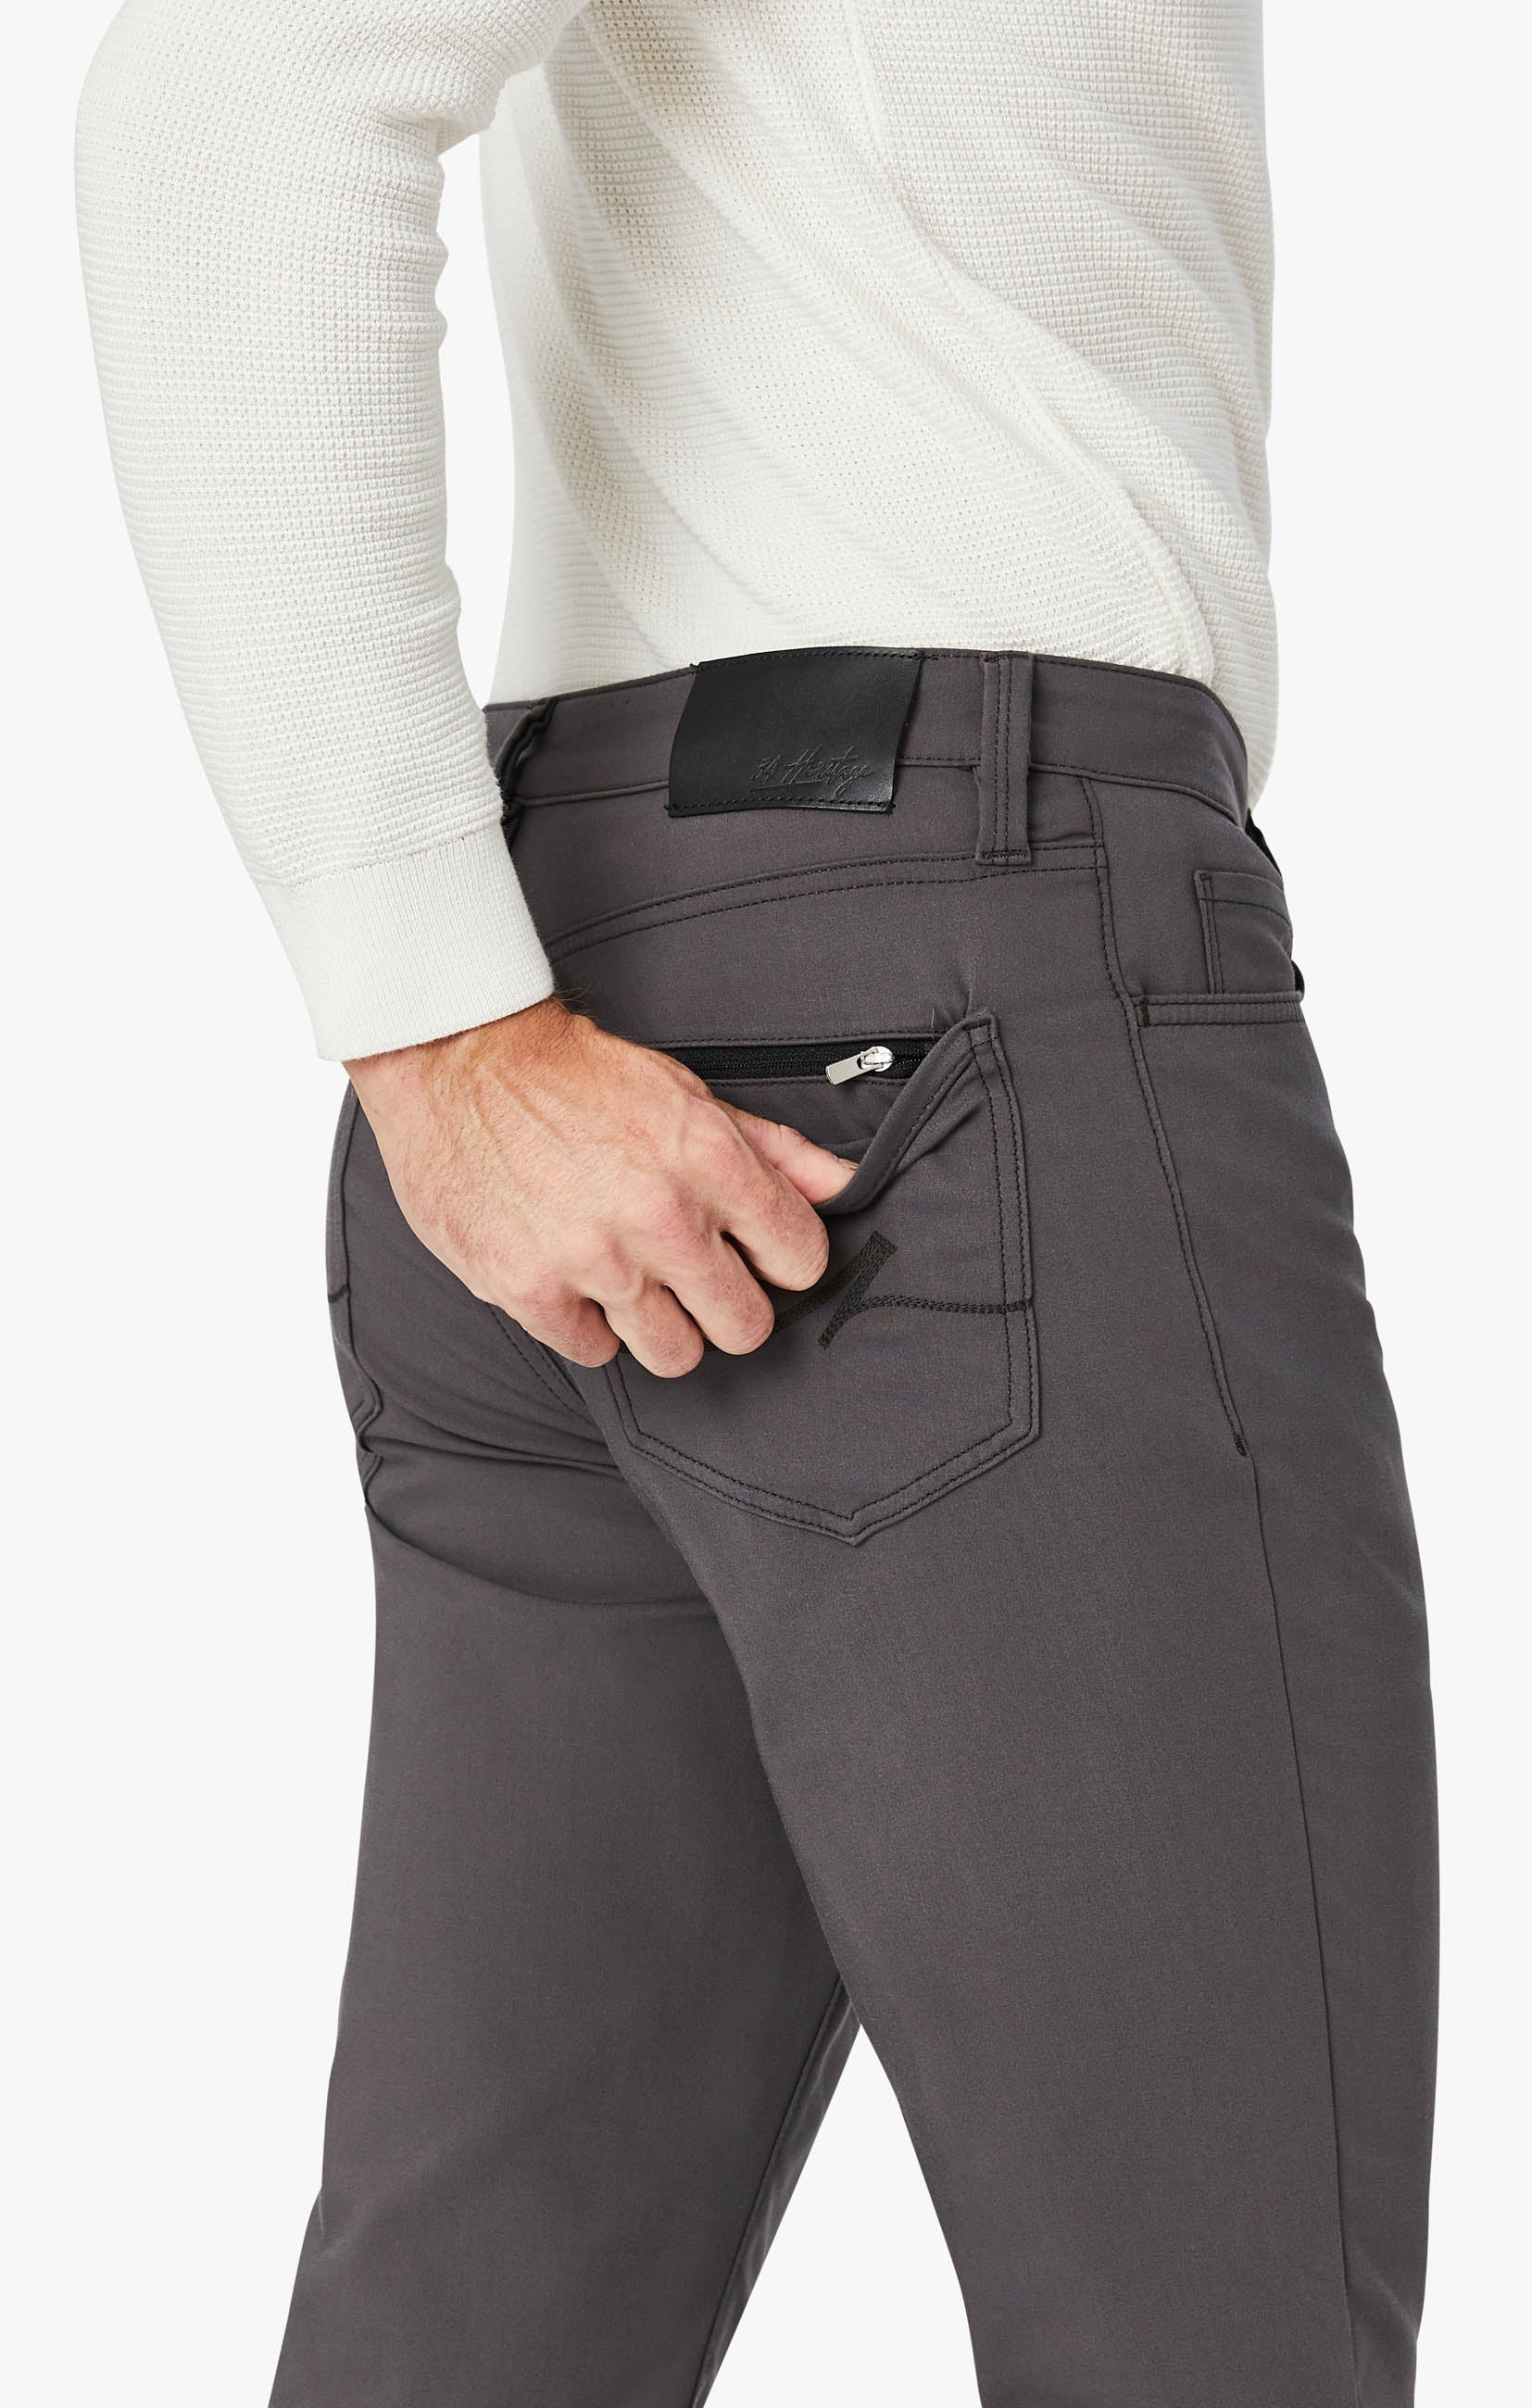 Charisma Relaxed Straight Commuter Pants In Graphite Image 6